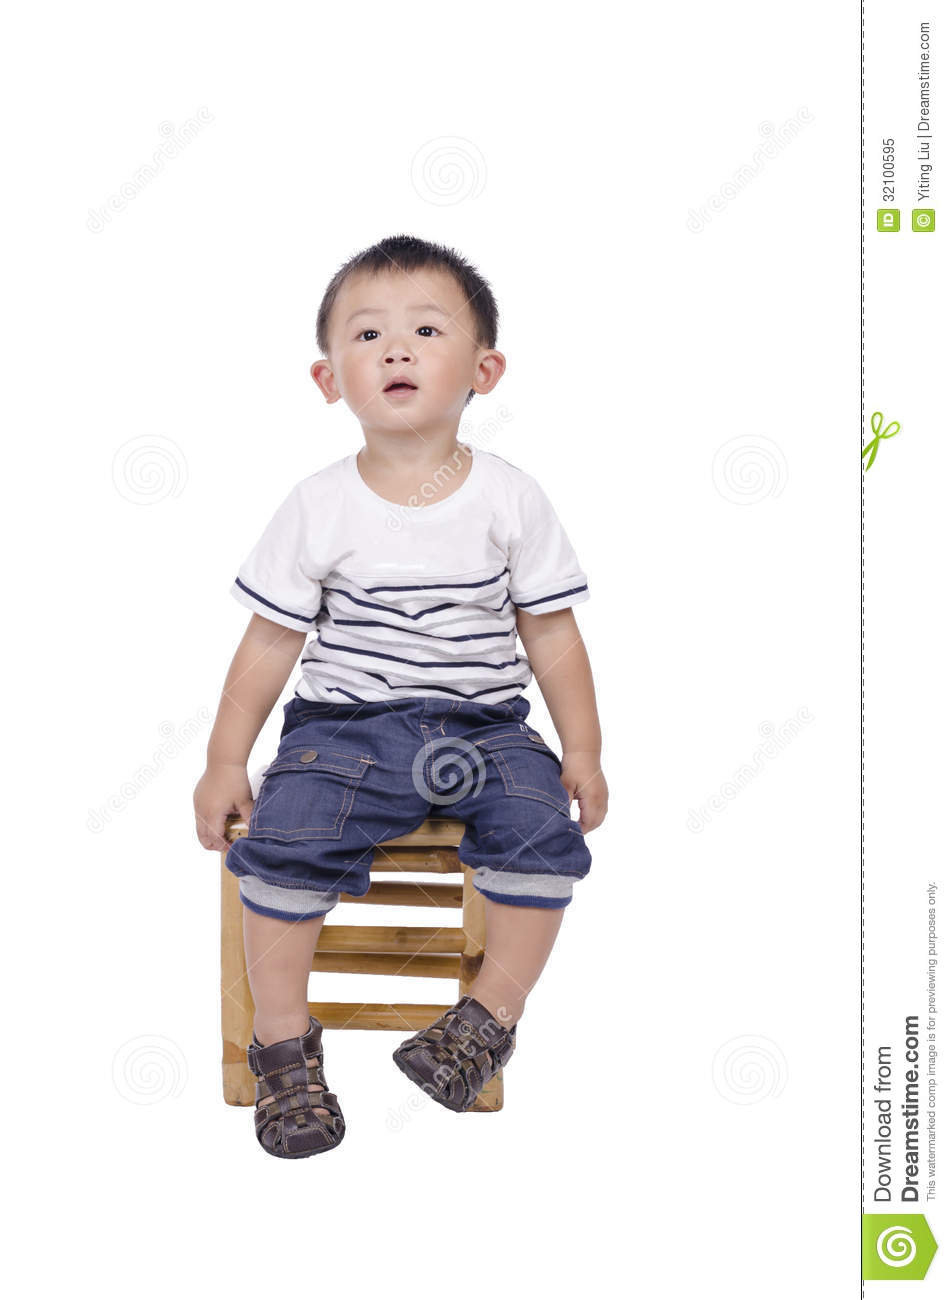 Cute Asian Boy Sitting On Chair Stock Image - Image of ... Cute Asian White Baby